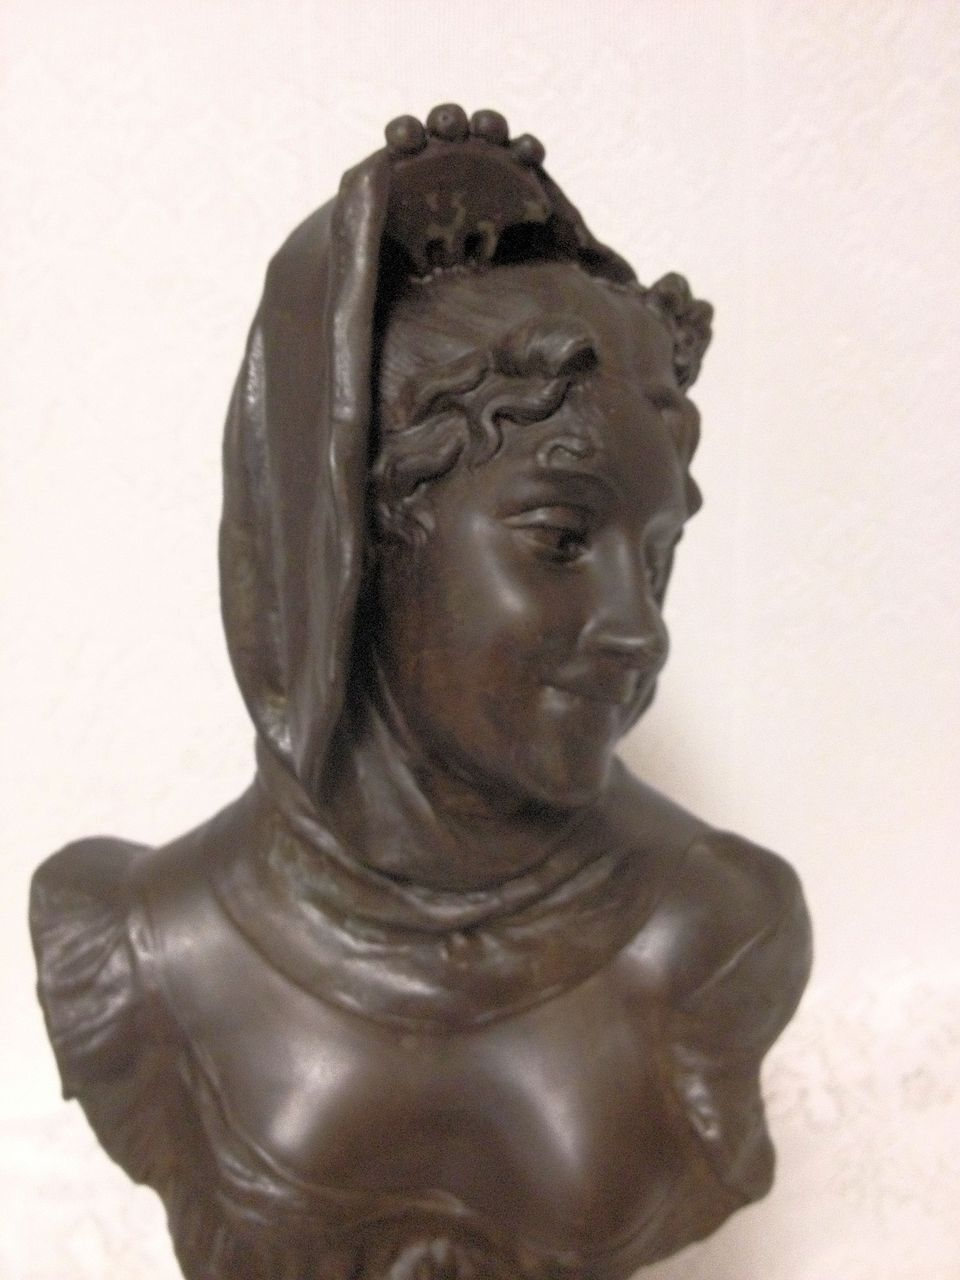 Superb Antique French Art Nouveau Maiden Bust by Henri Levasseur C. 1880-1900